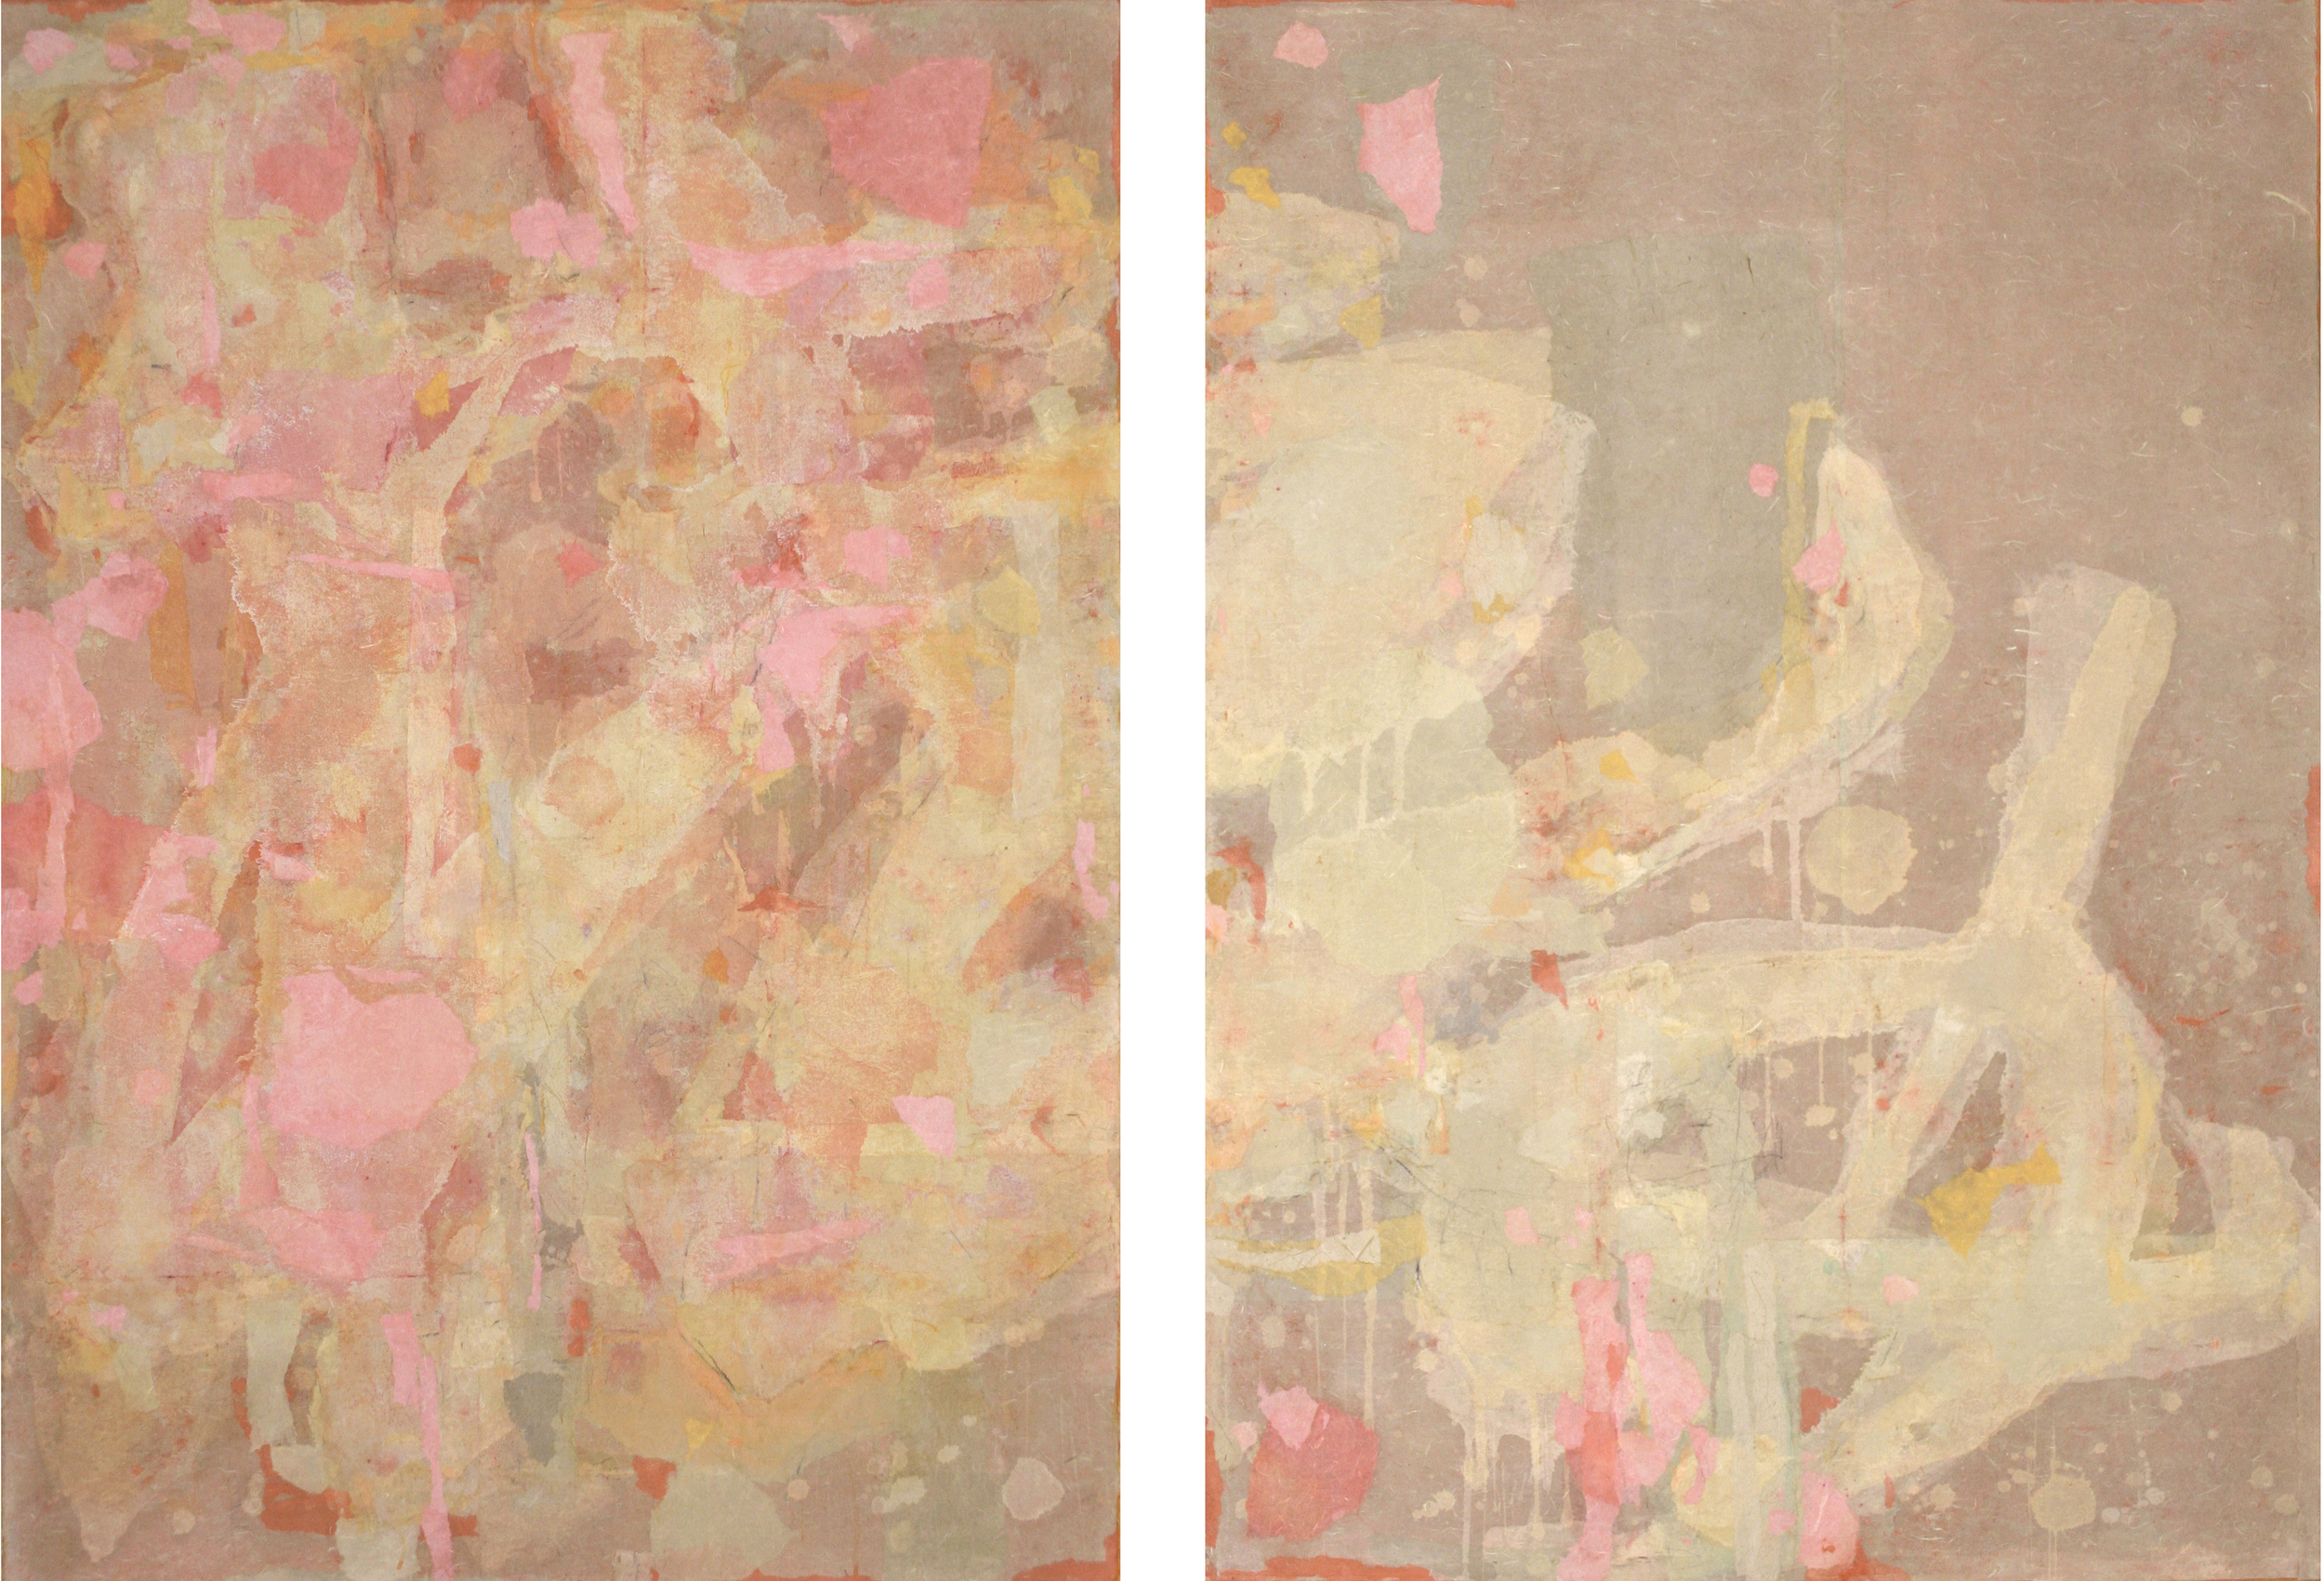 No.13144, 2013, Gouache, charcoal, pastel and Xuan paper collage on canvas, 布上水粉,炭笔,色粉笔与宣纸拼贴 Two panels, each 68 x 48 in.; 136 x 96 in., overall (两幅,每幅172 x 122 cm; 总共 345 x 243 cm)